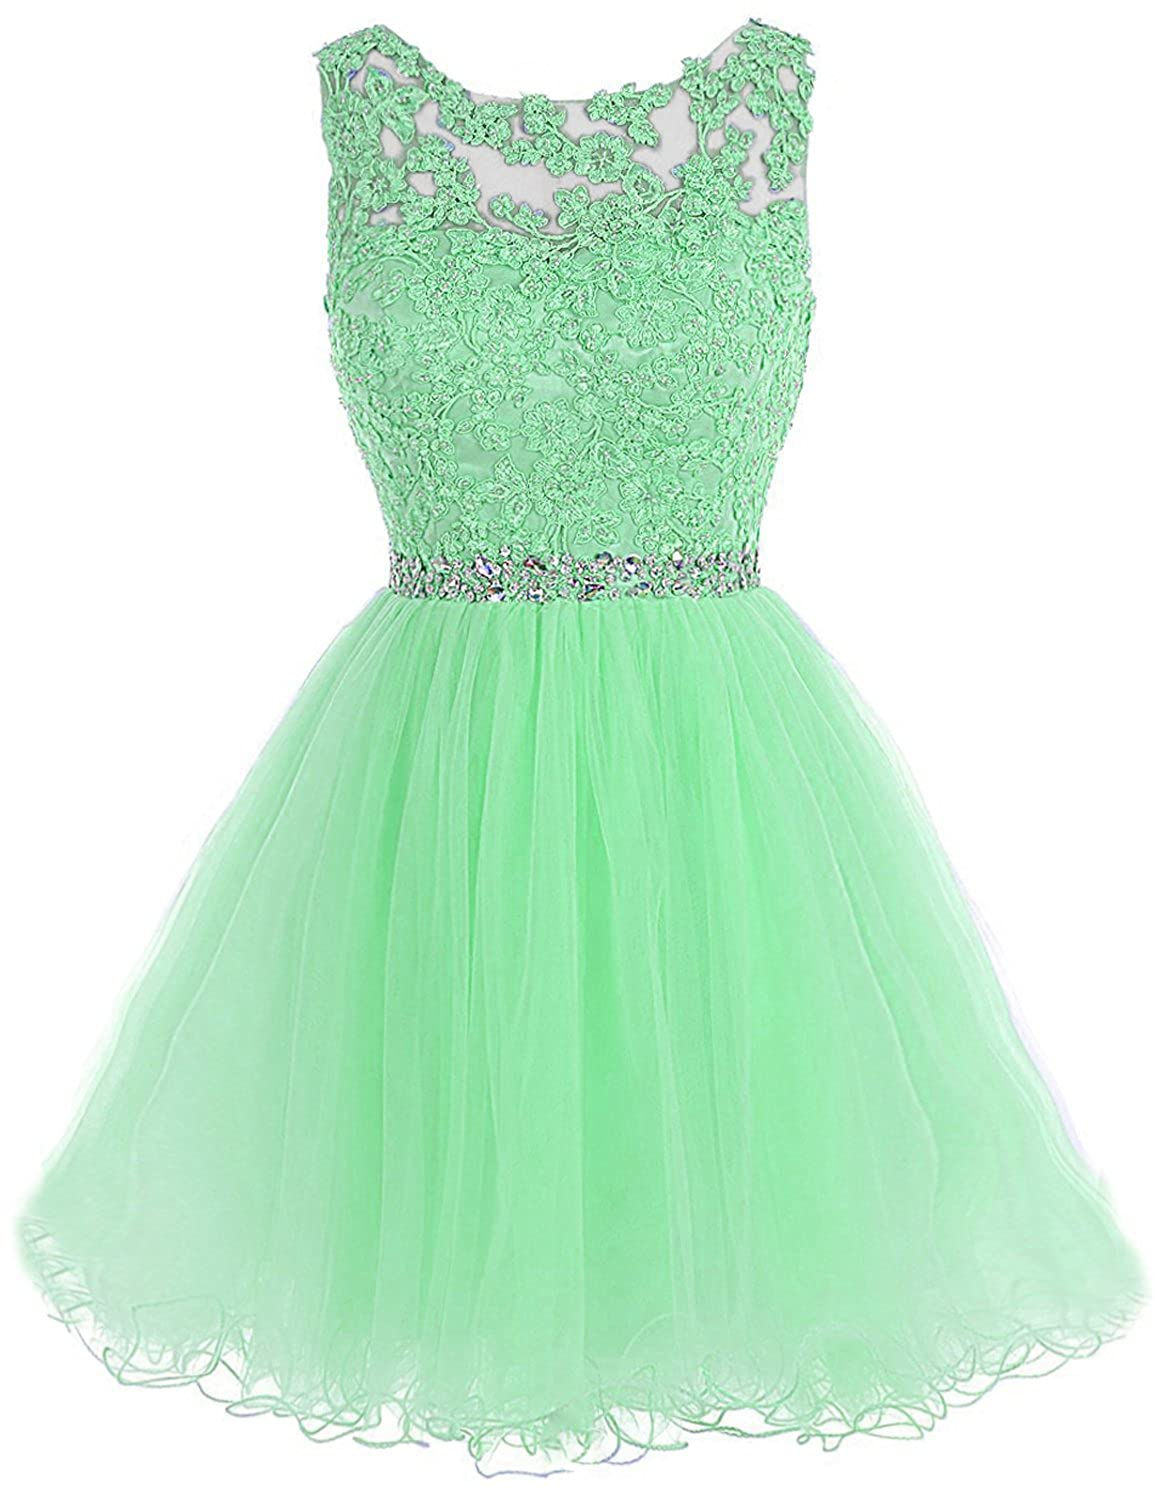 361mint Sarahbridal Women's Short Tulle Beading Homecoming Dresses 2019 Prom Party Gowns